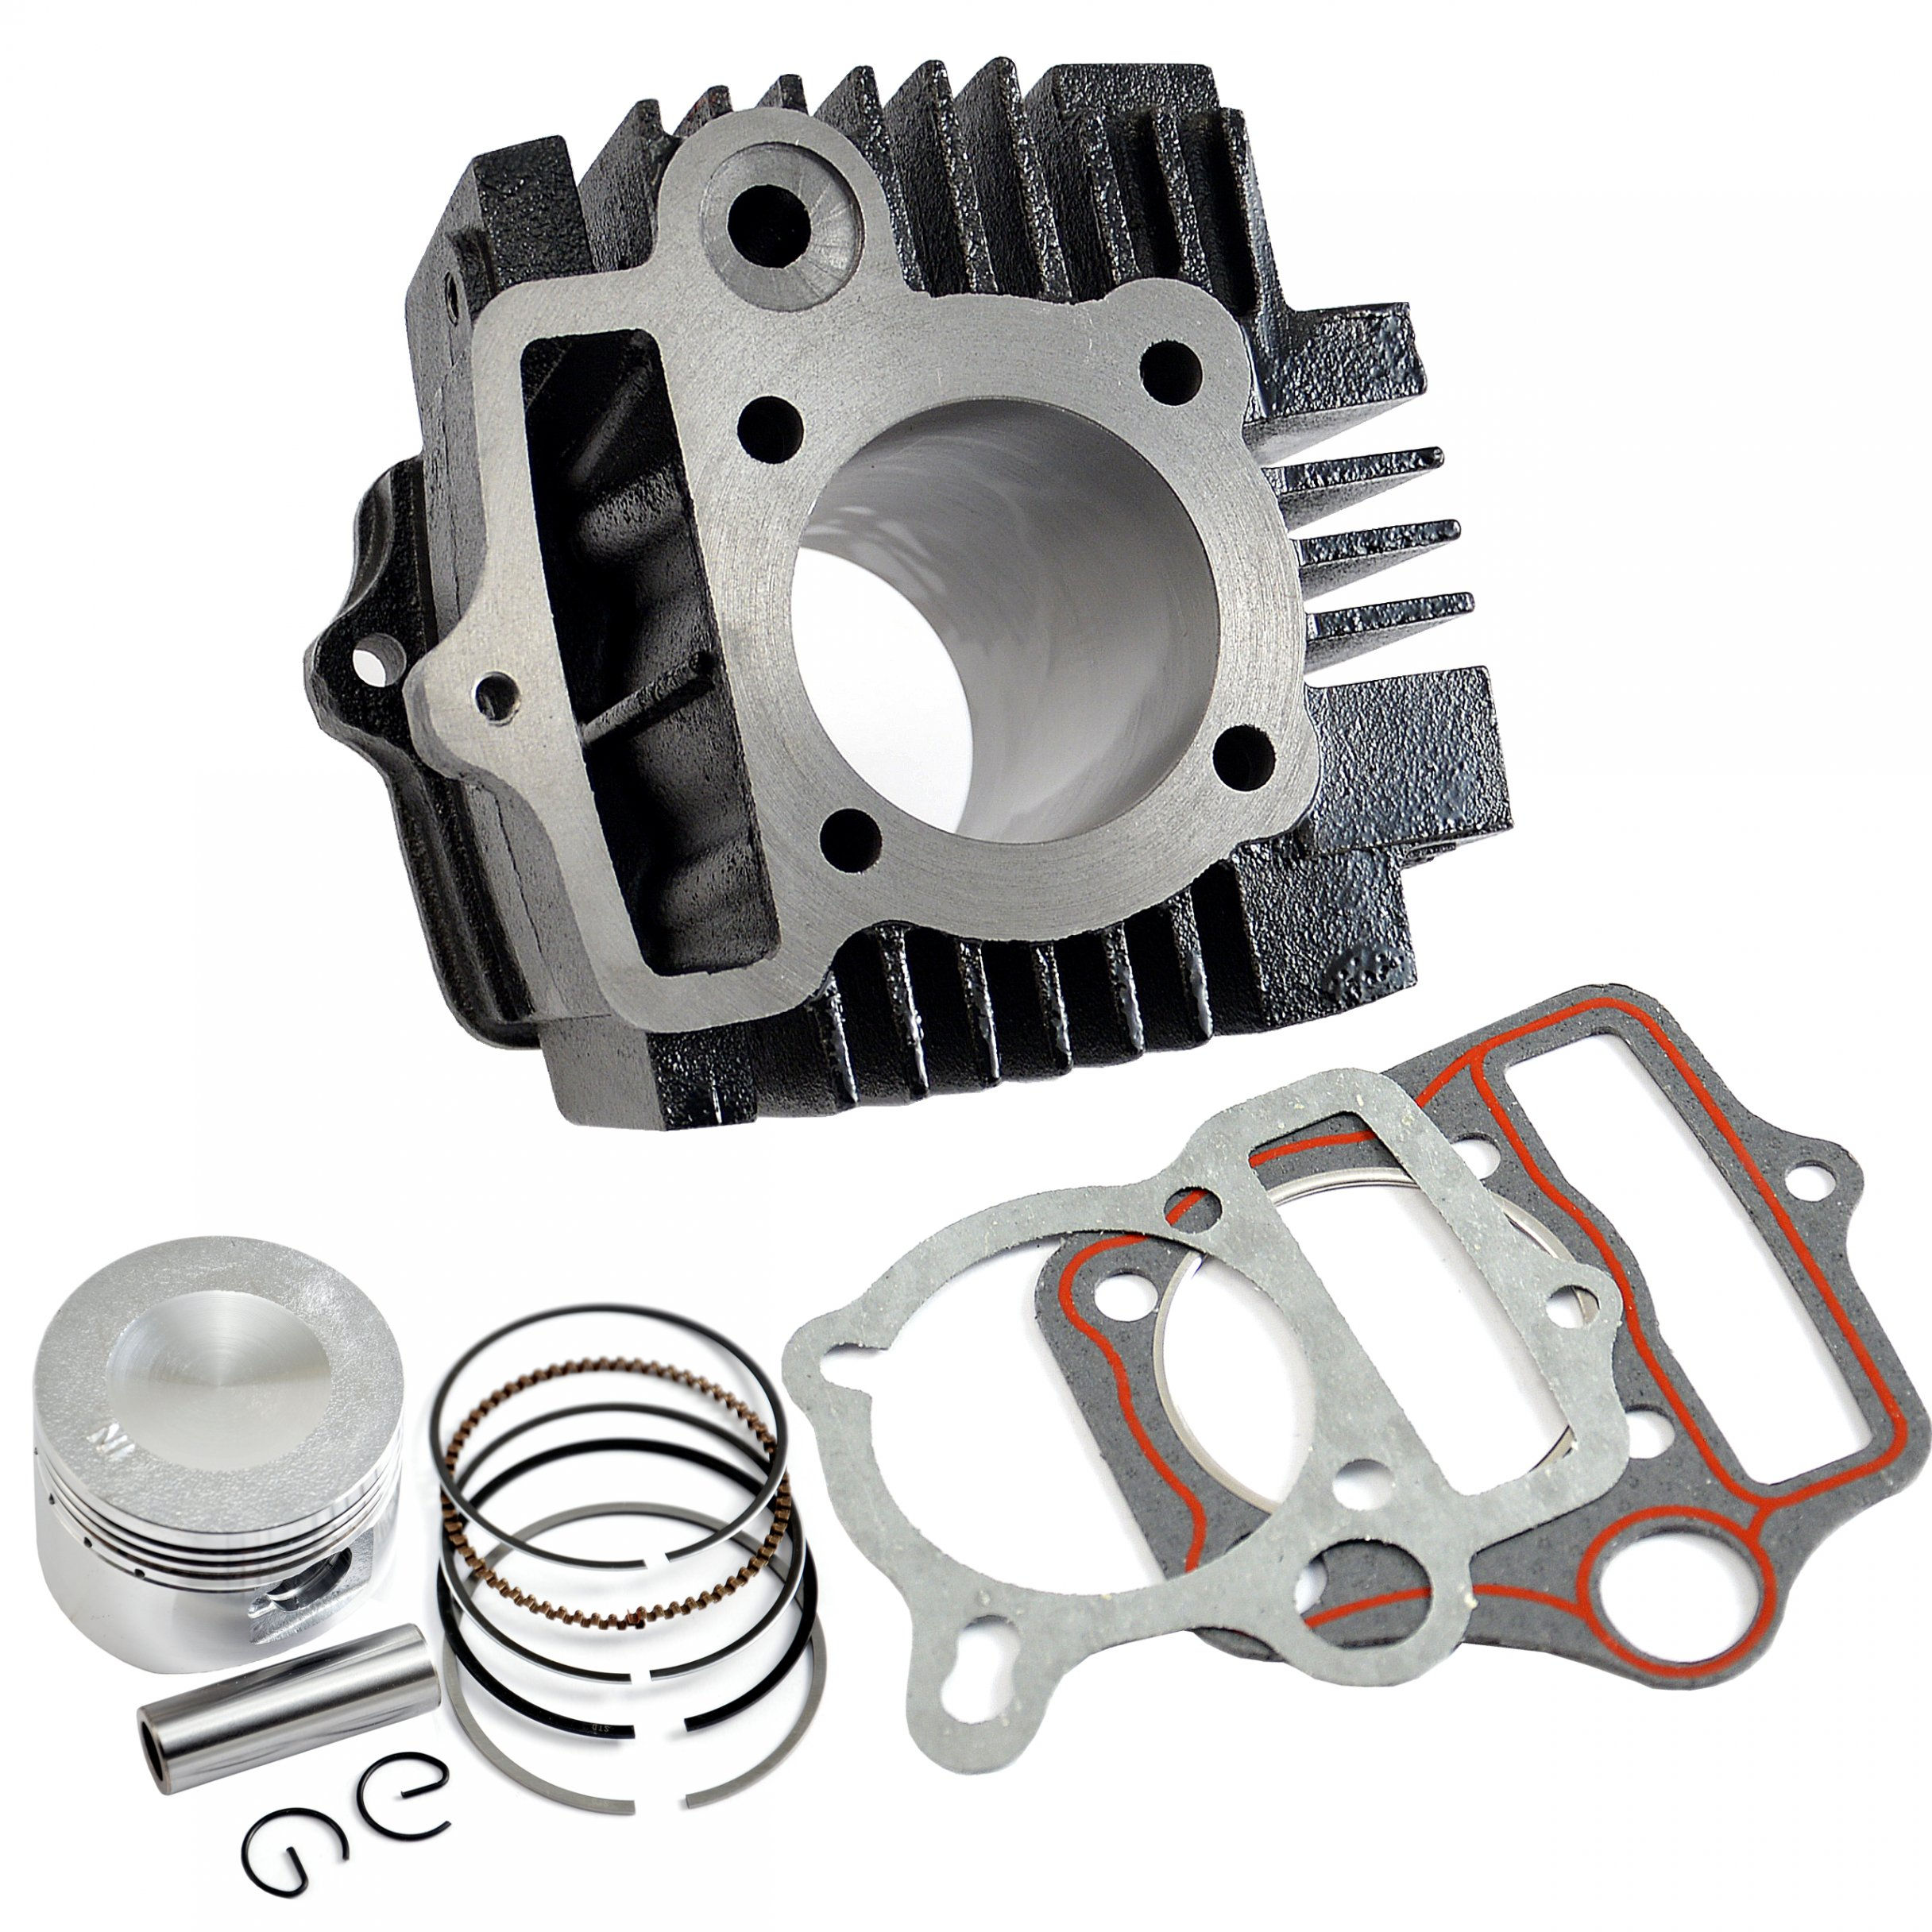 CYLINDER ПОРШЕНЬ PIERŚCIENIE QUAD ATV CROSS 110 125